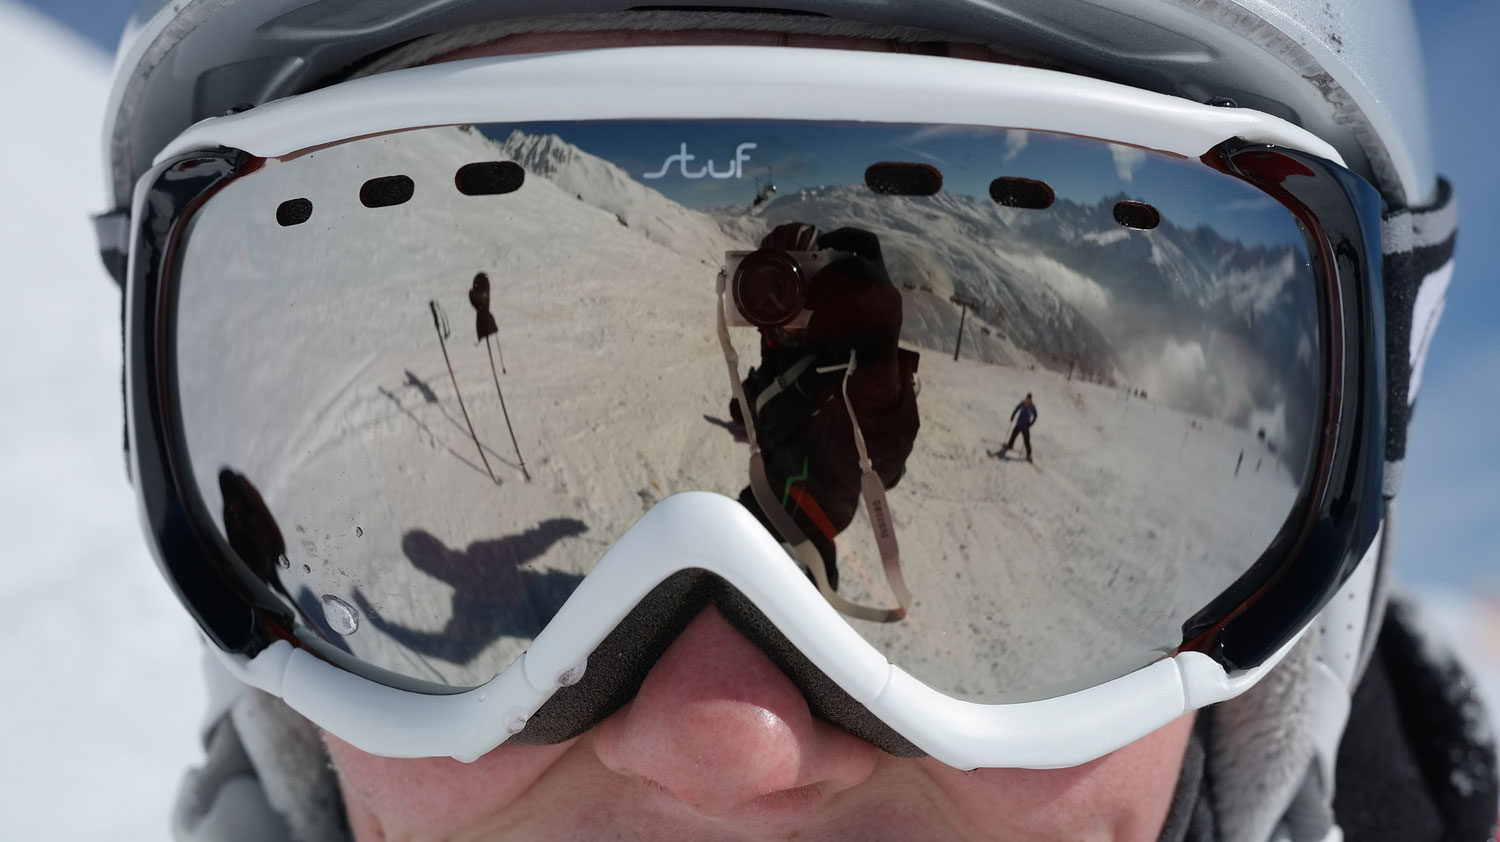 How to stop ski goggles fogging up